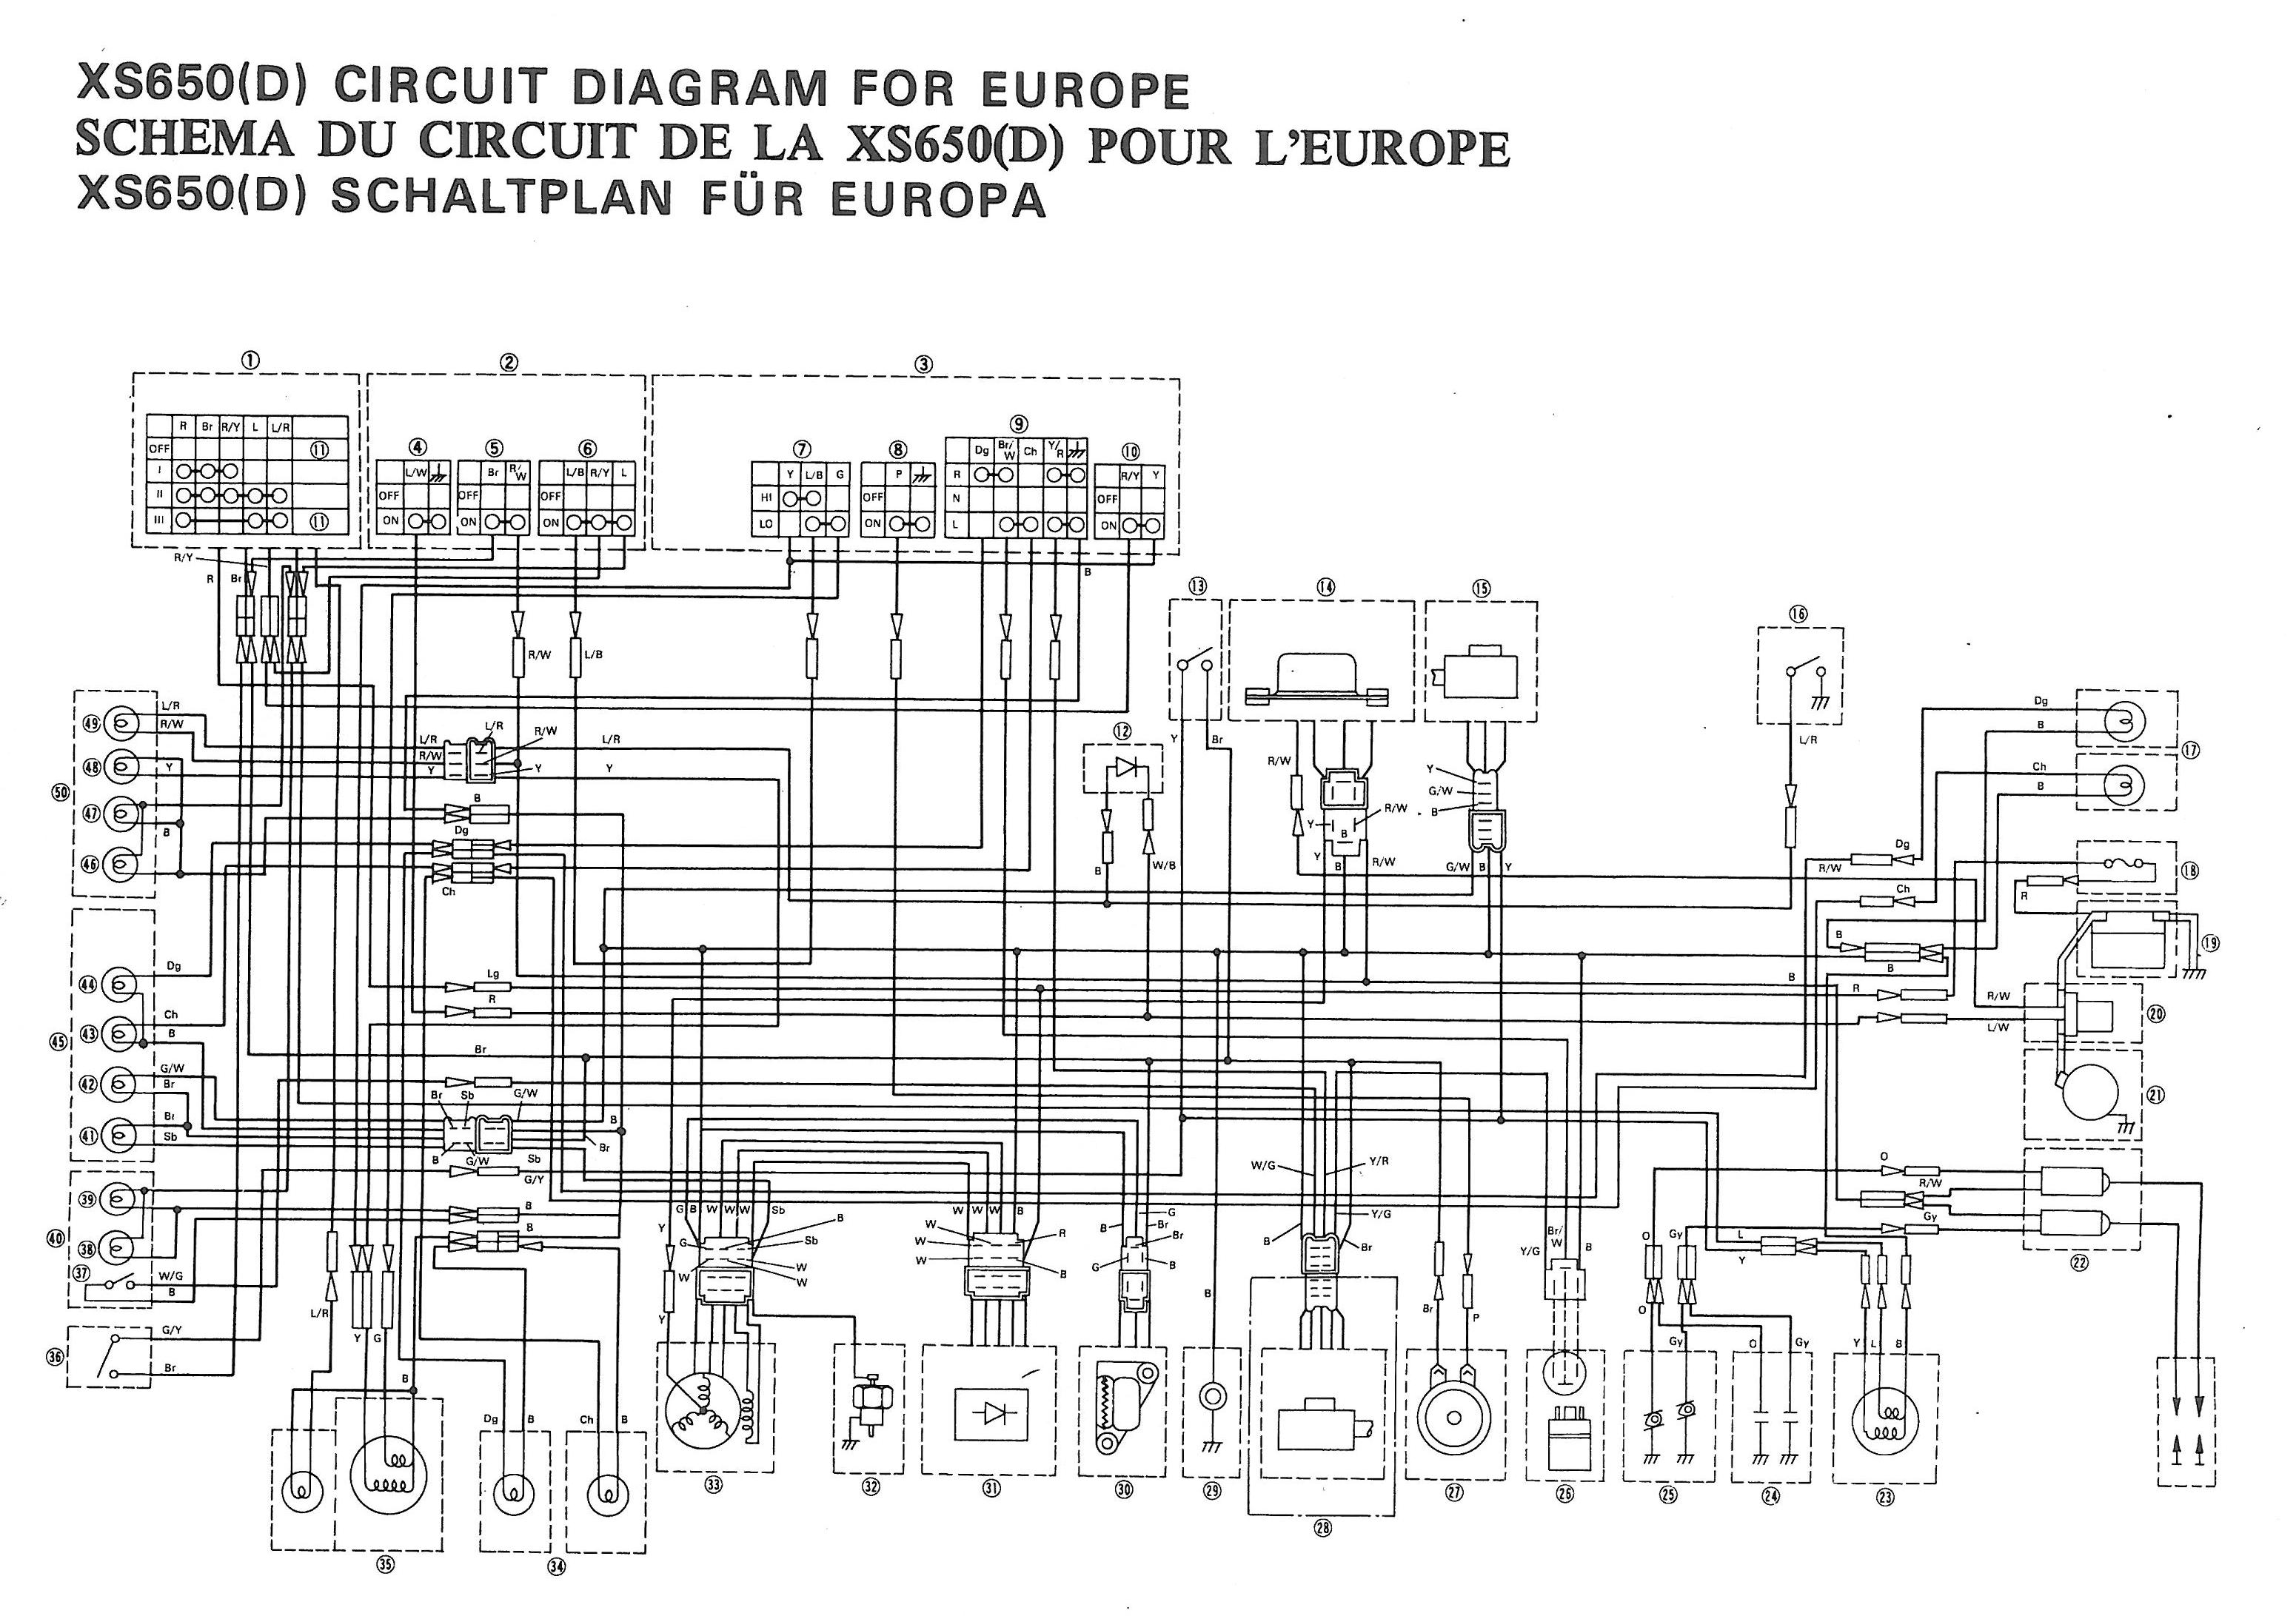 Xs Yamaha Wiring Diagrams Car Explained 1974 360 Enduro Diagram Xs650 77 D Thexscafe Rh Thexscafedotcom Wordpress Com Atv